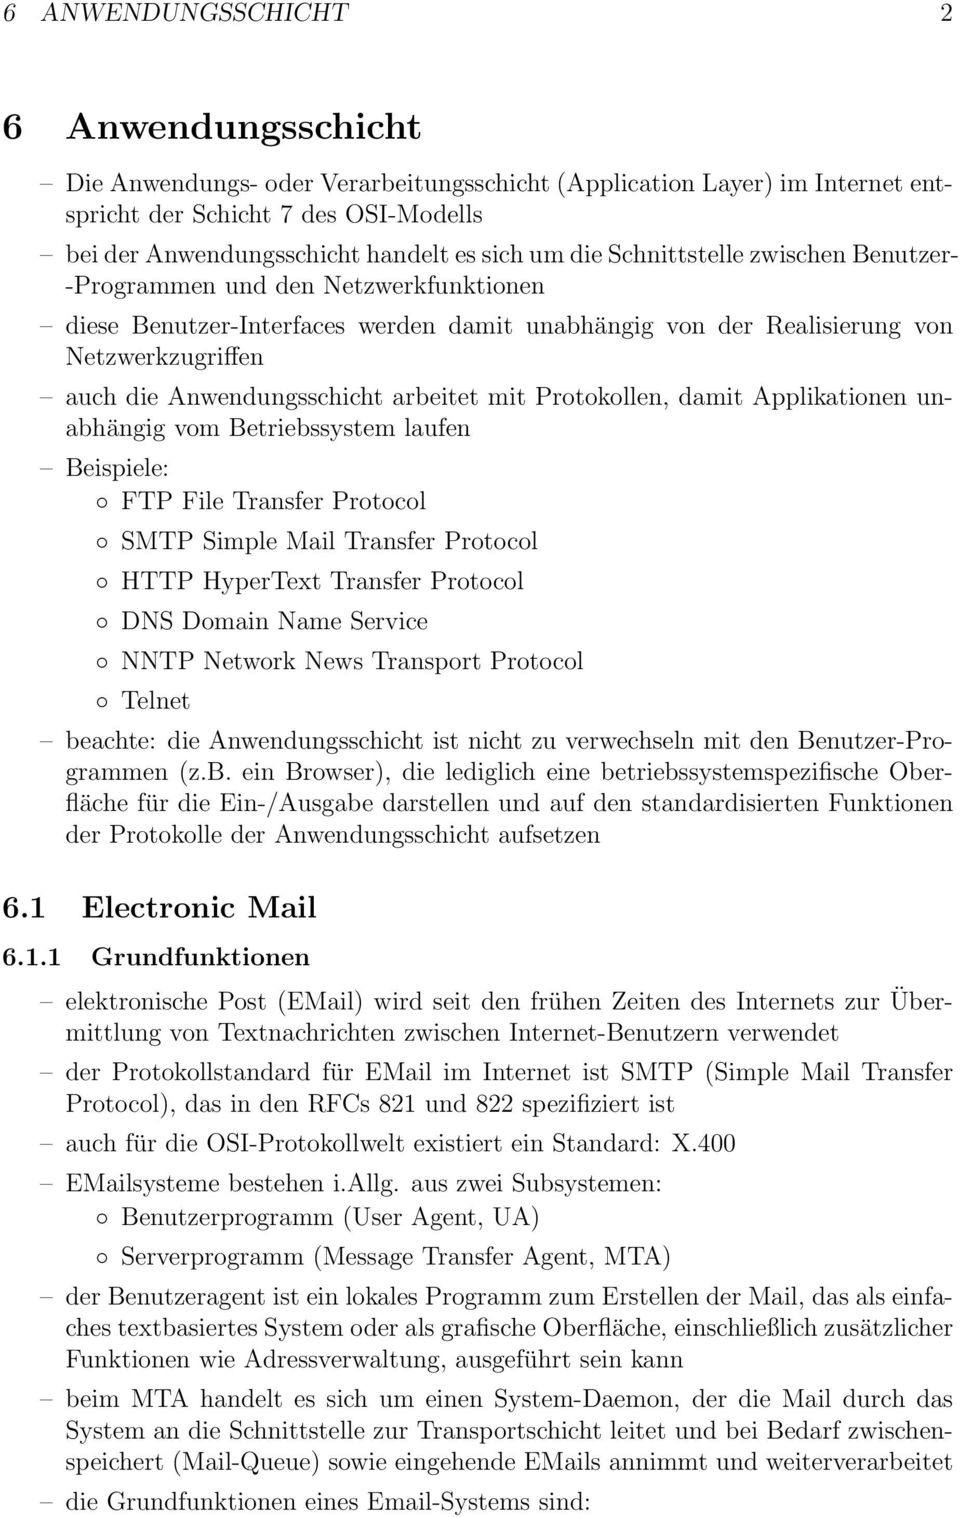 arbeitet mit Protokollen, damit Applikationen unabhängig vom Betriebssystem laufen Beispiele: FTP File Transfer Protocol SMTP Simple Mail Transfer Protocol HTTP HyperText Transfer Protocol DNS Domain